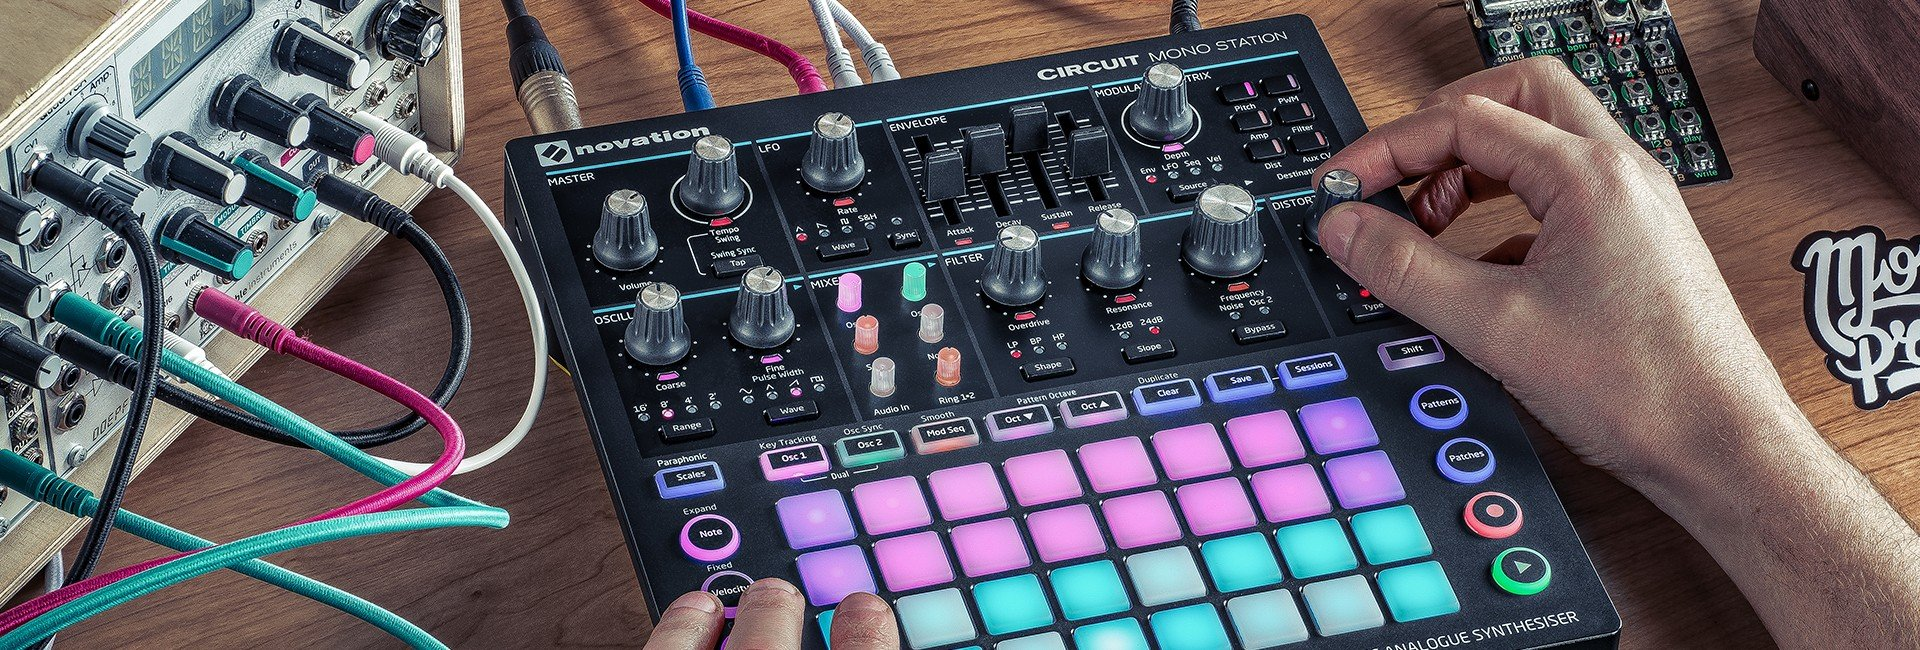 Novation Circuit Mono Station Paraphonic Analog Synthesizer with Ableton Live Lite, DJ Gig Bag and Headphones by Novation